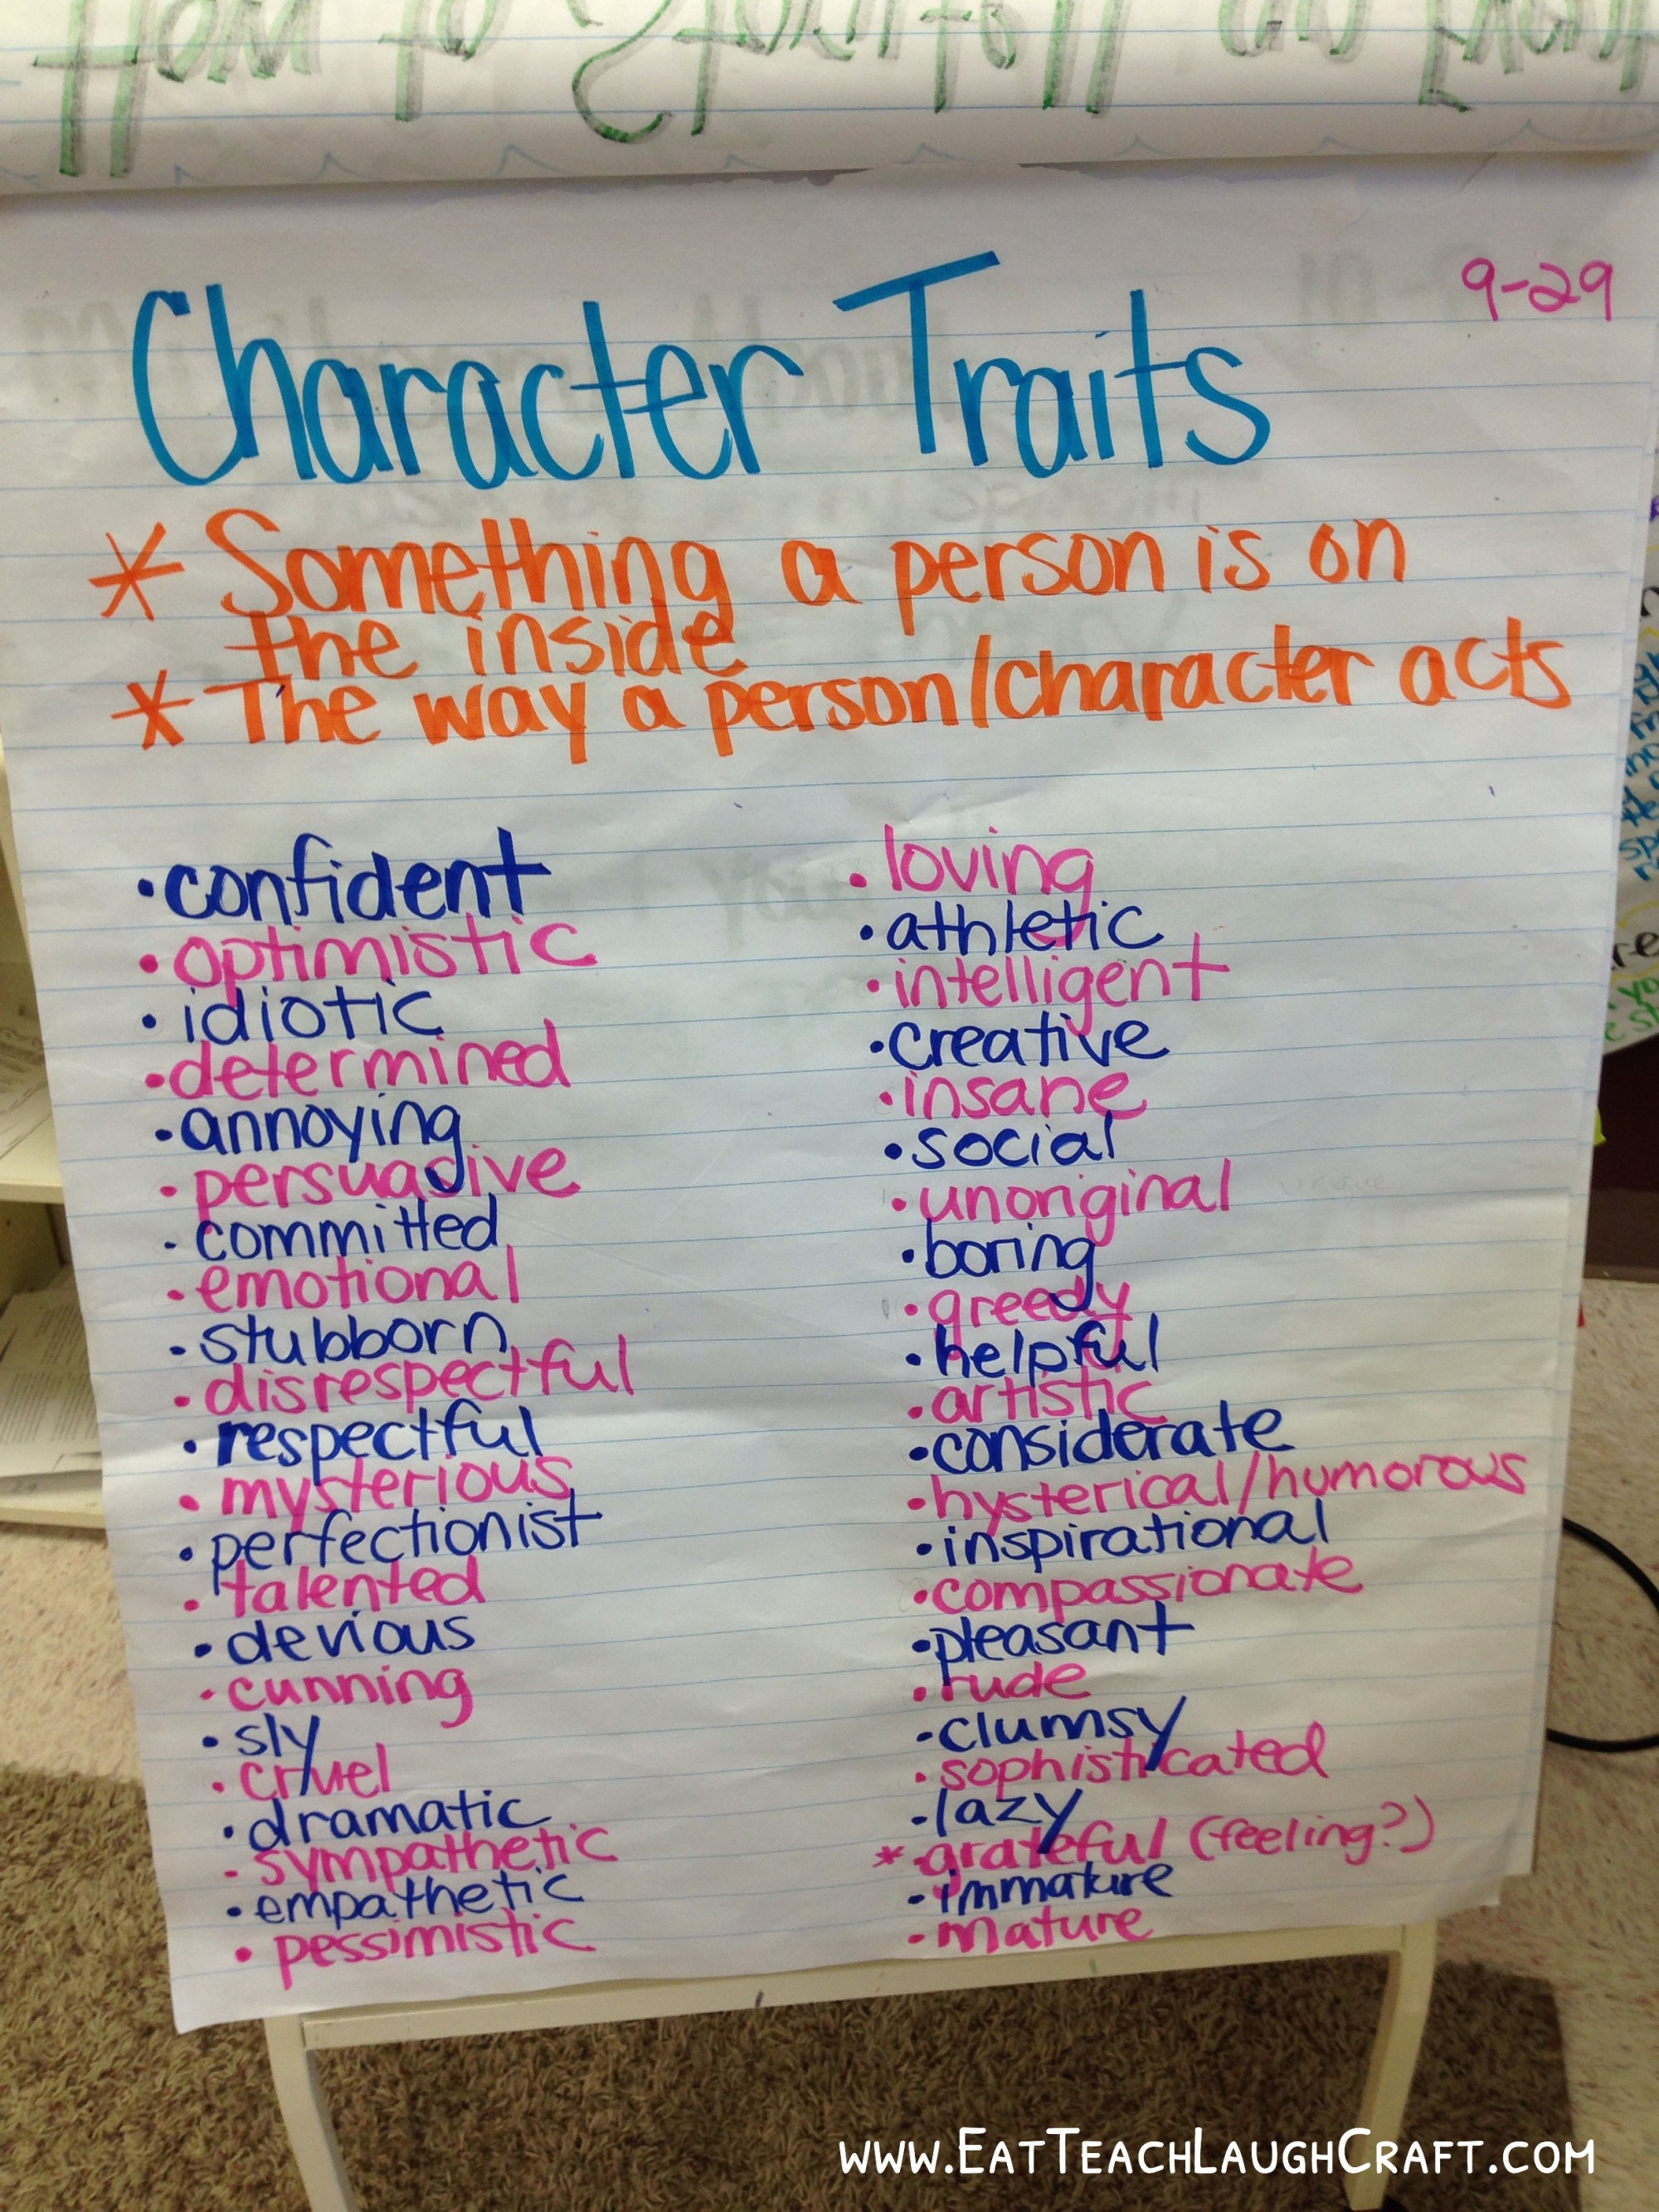 hight resolution of Categorizing Character Traits in a 5th Grade Class - Eat Teach Laugh Craft